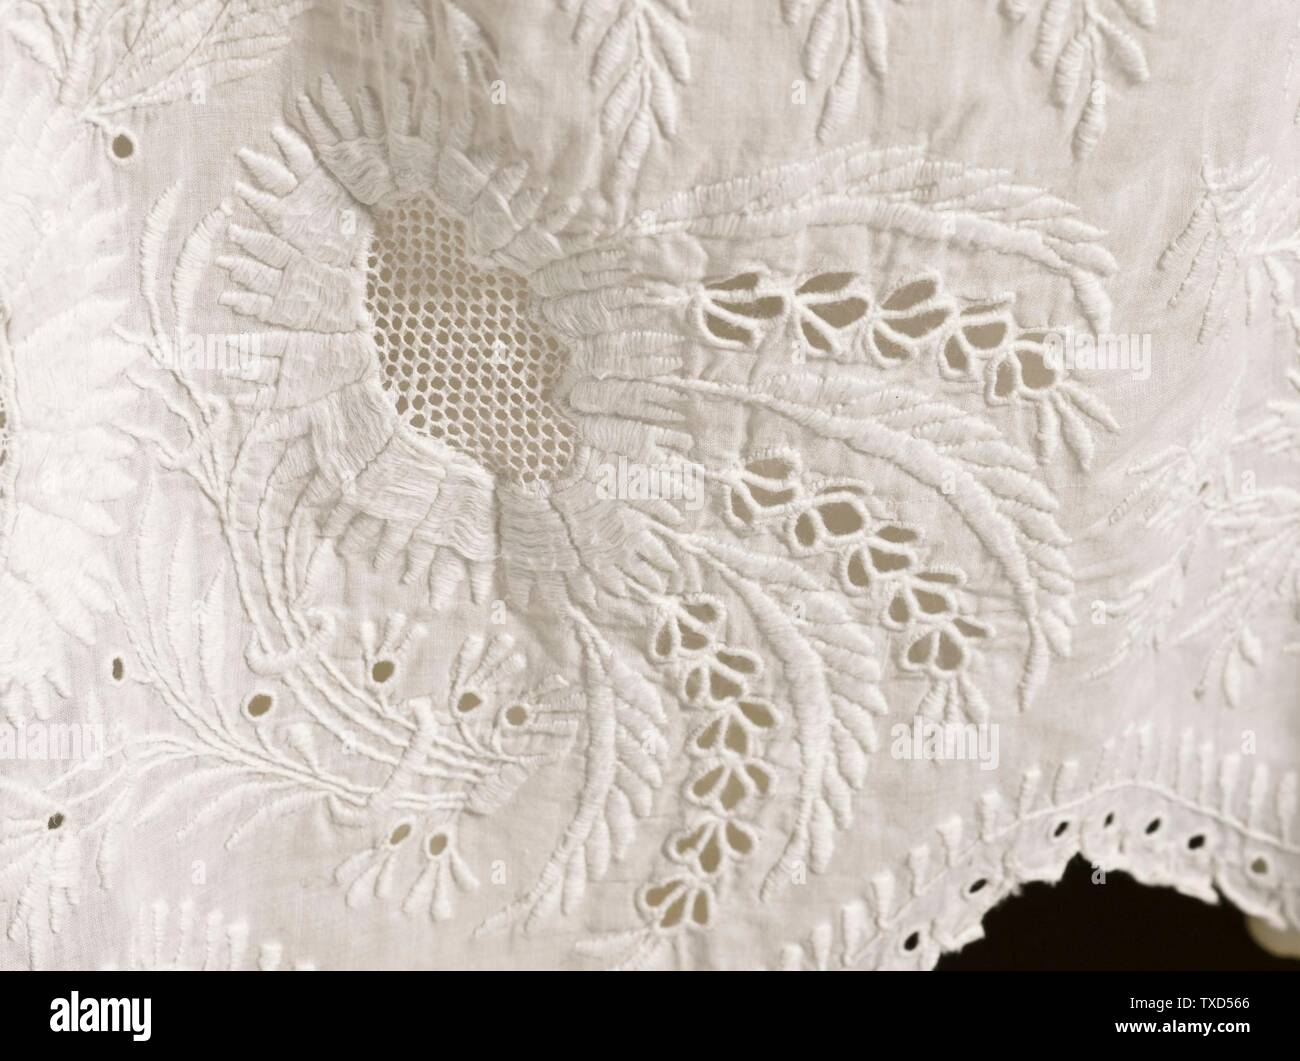 Cotton Broderie Anglais Lace Fabric CUTWORK Baby Clothing Dress Skirts Blouse